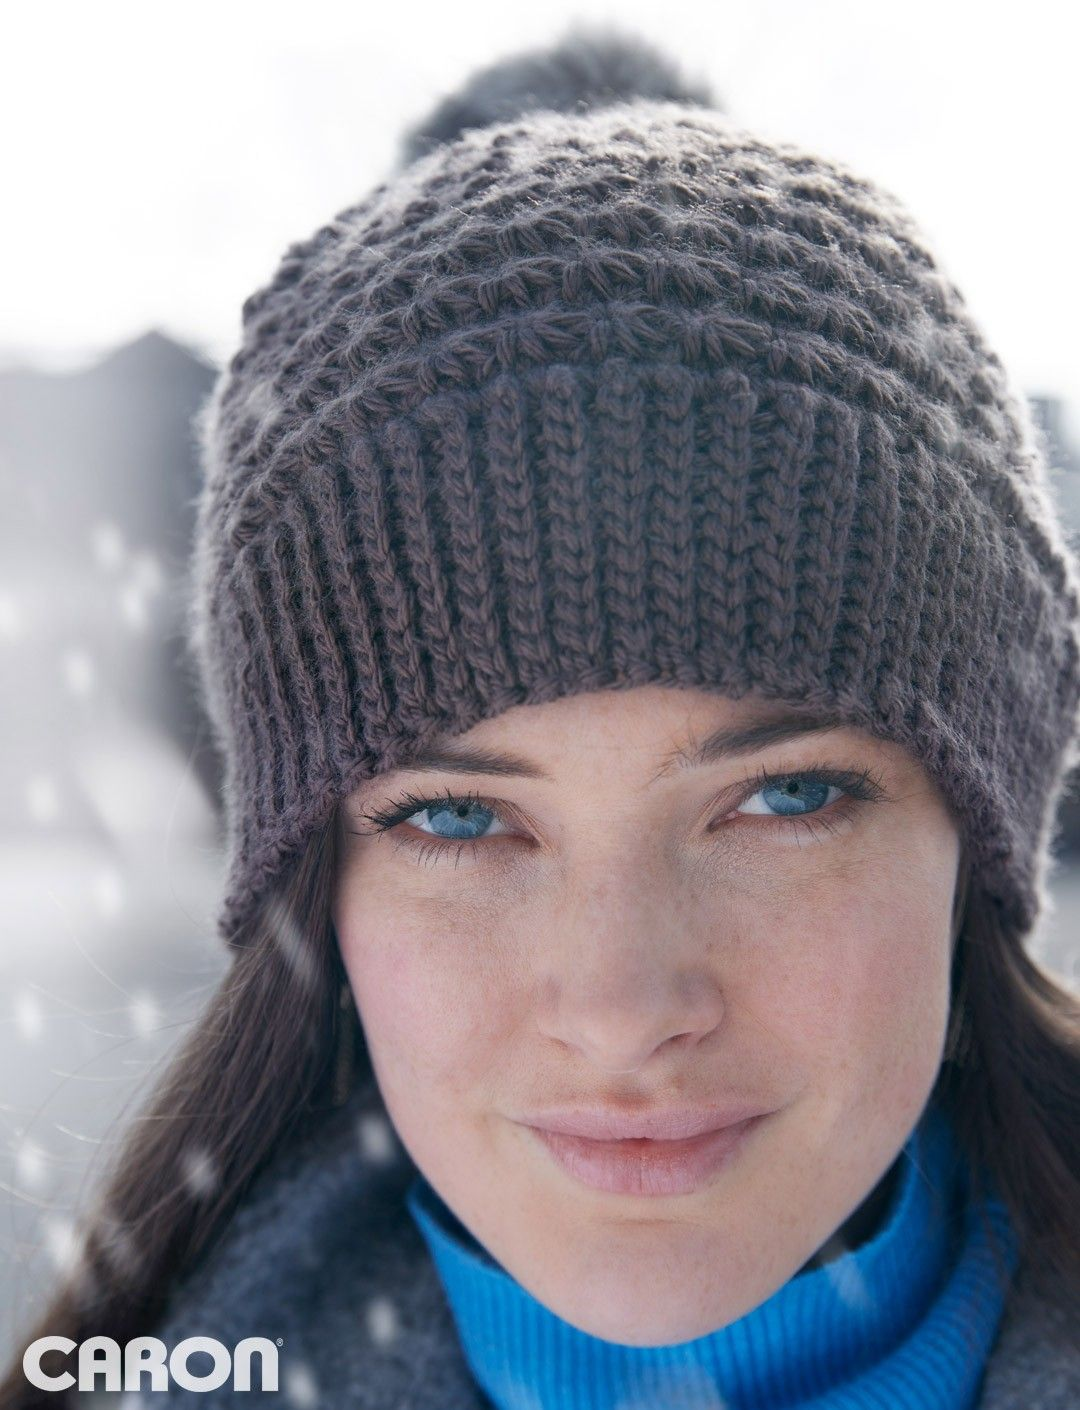 928b9f77429 5 Star Beanie Crochet Hat Pattern Featuring the Star Cluster Stitch